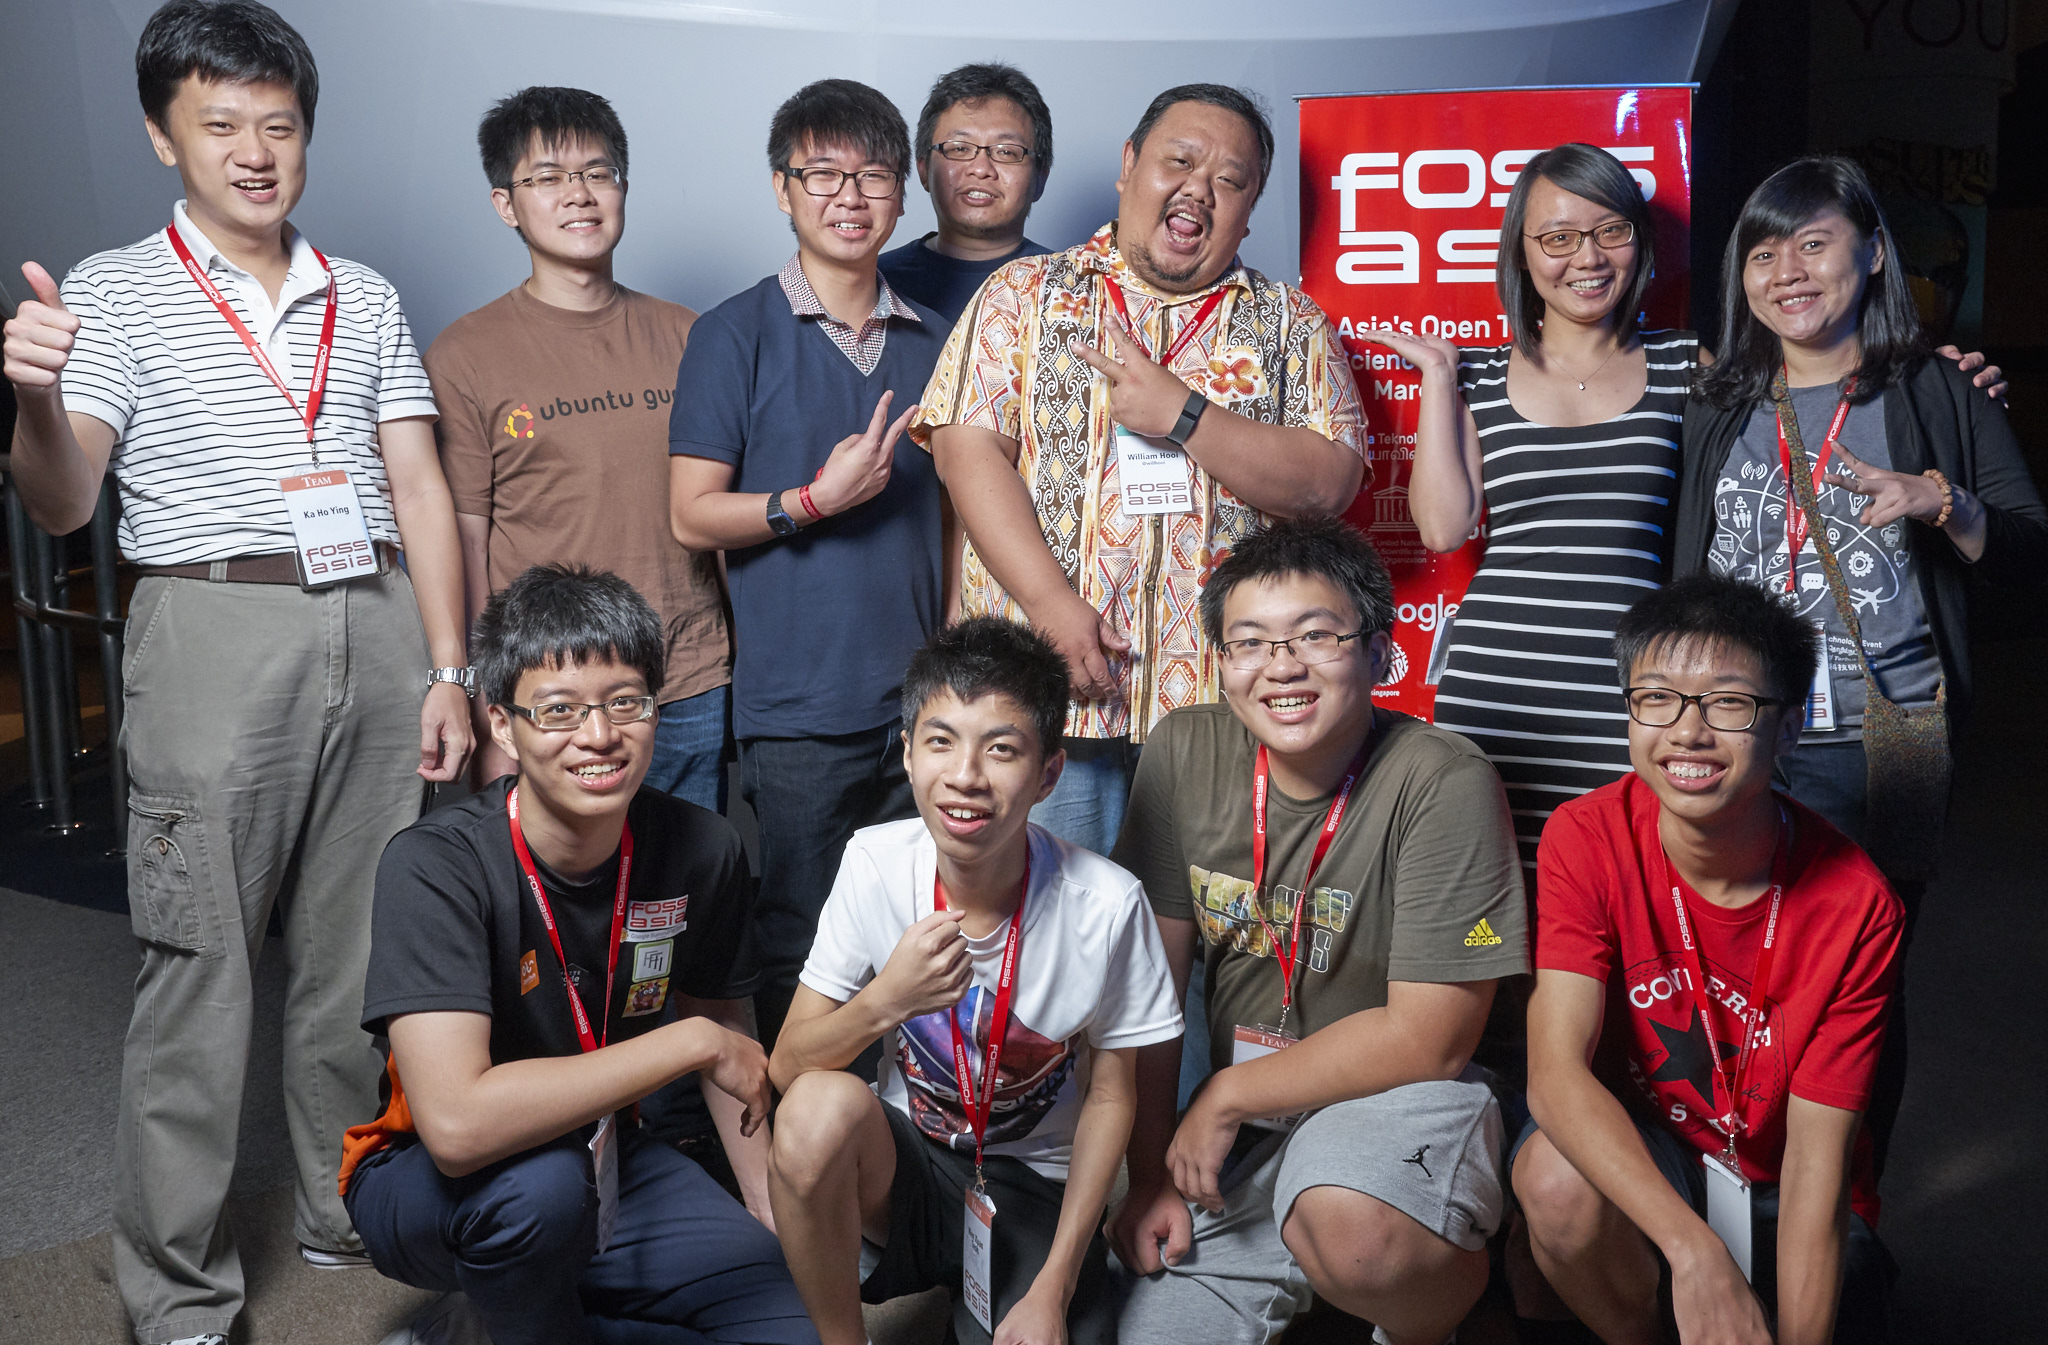 Apply for Your Free Stay during the FOSSASIA Summit 2017 with our 100 #OpenTechNights Program